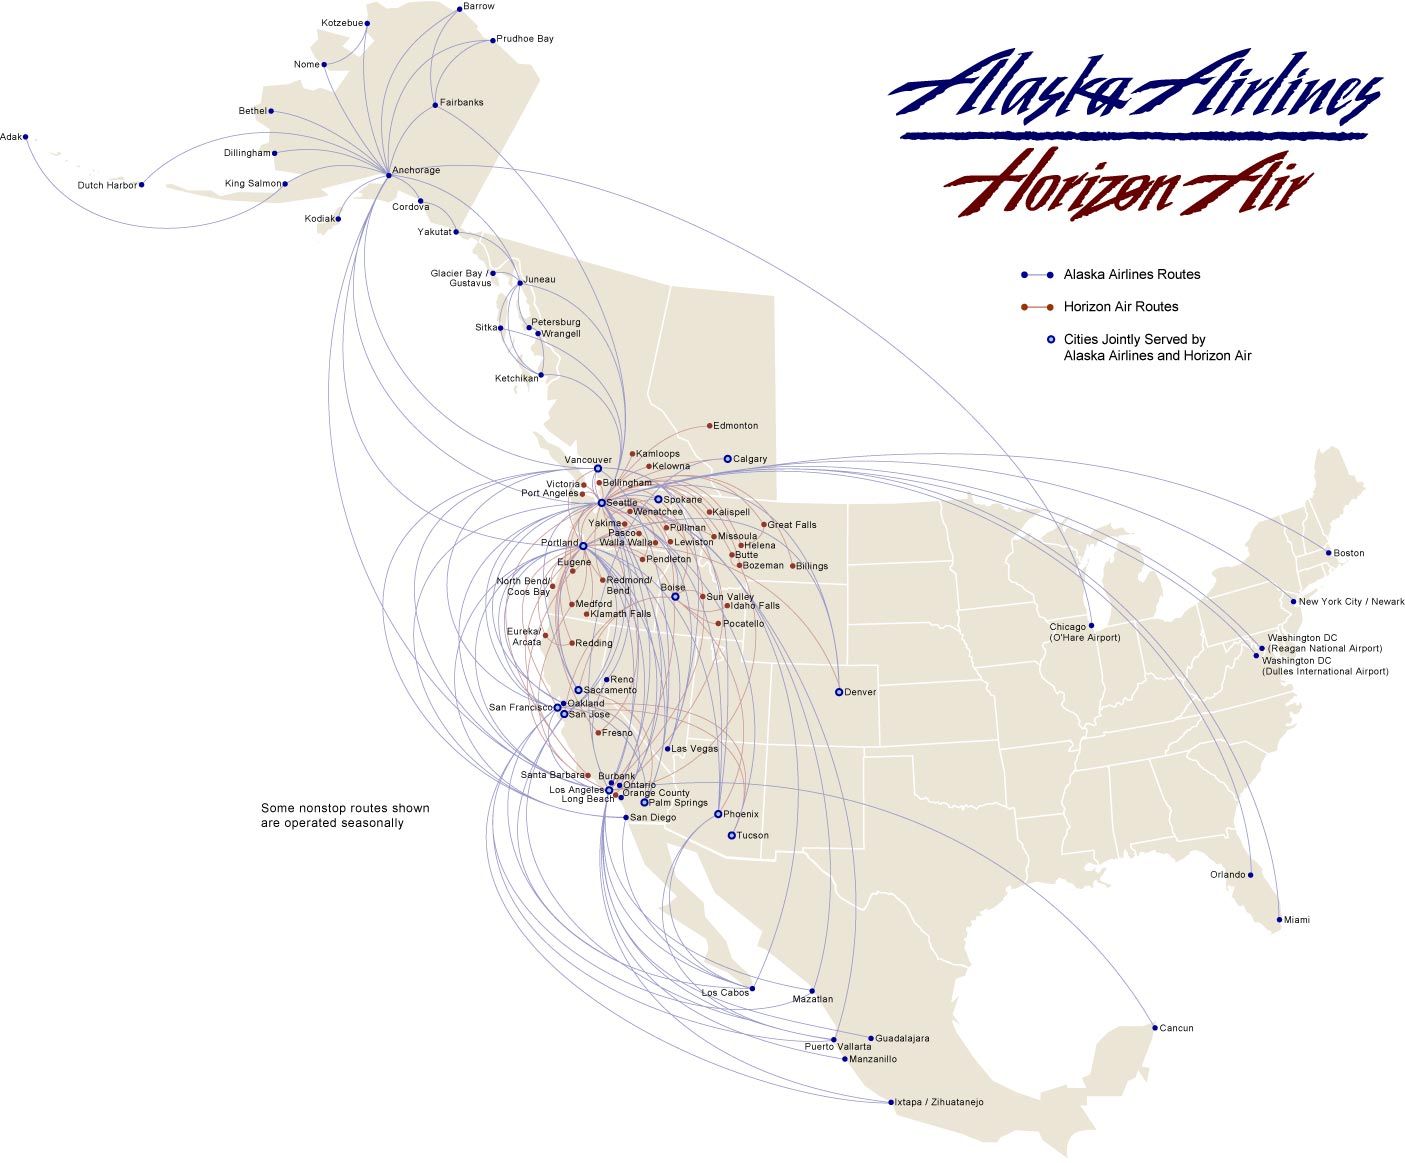 Southwest Airlines Click The Image For A Pdf Version Route Map Larger View Here Note Viewing Document Linked Above Requires Adobe Acrobat Reader